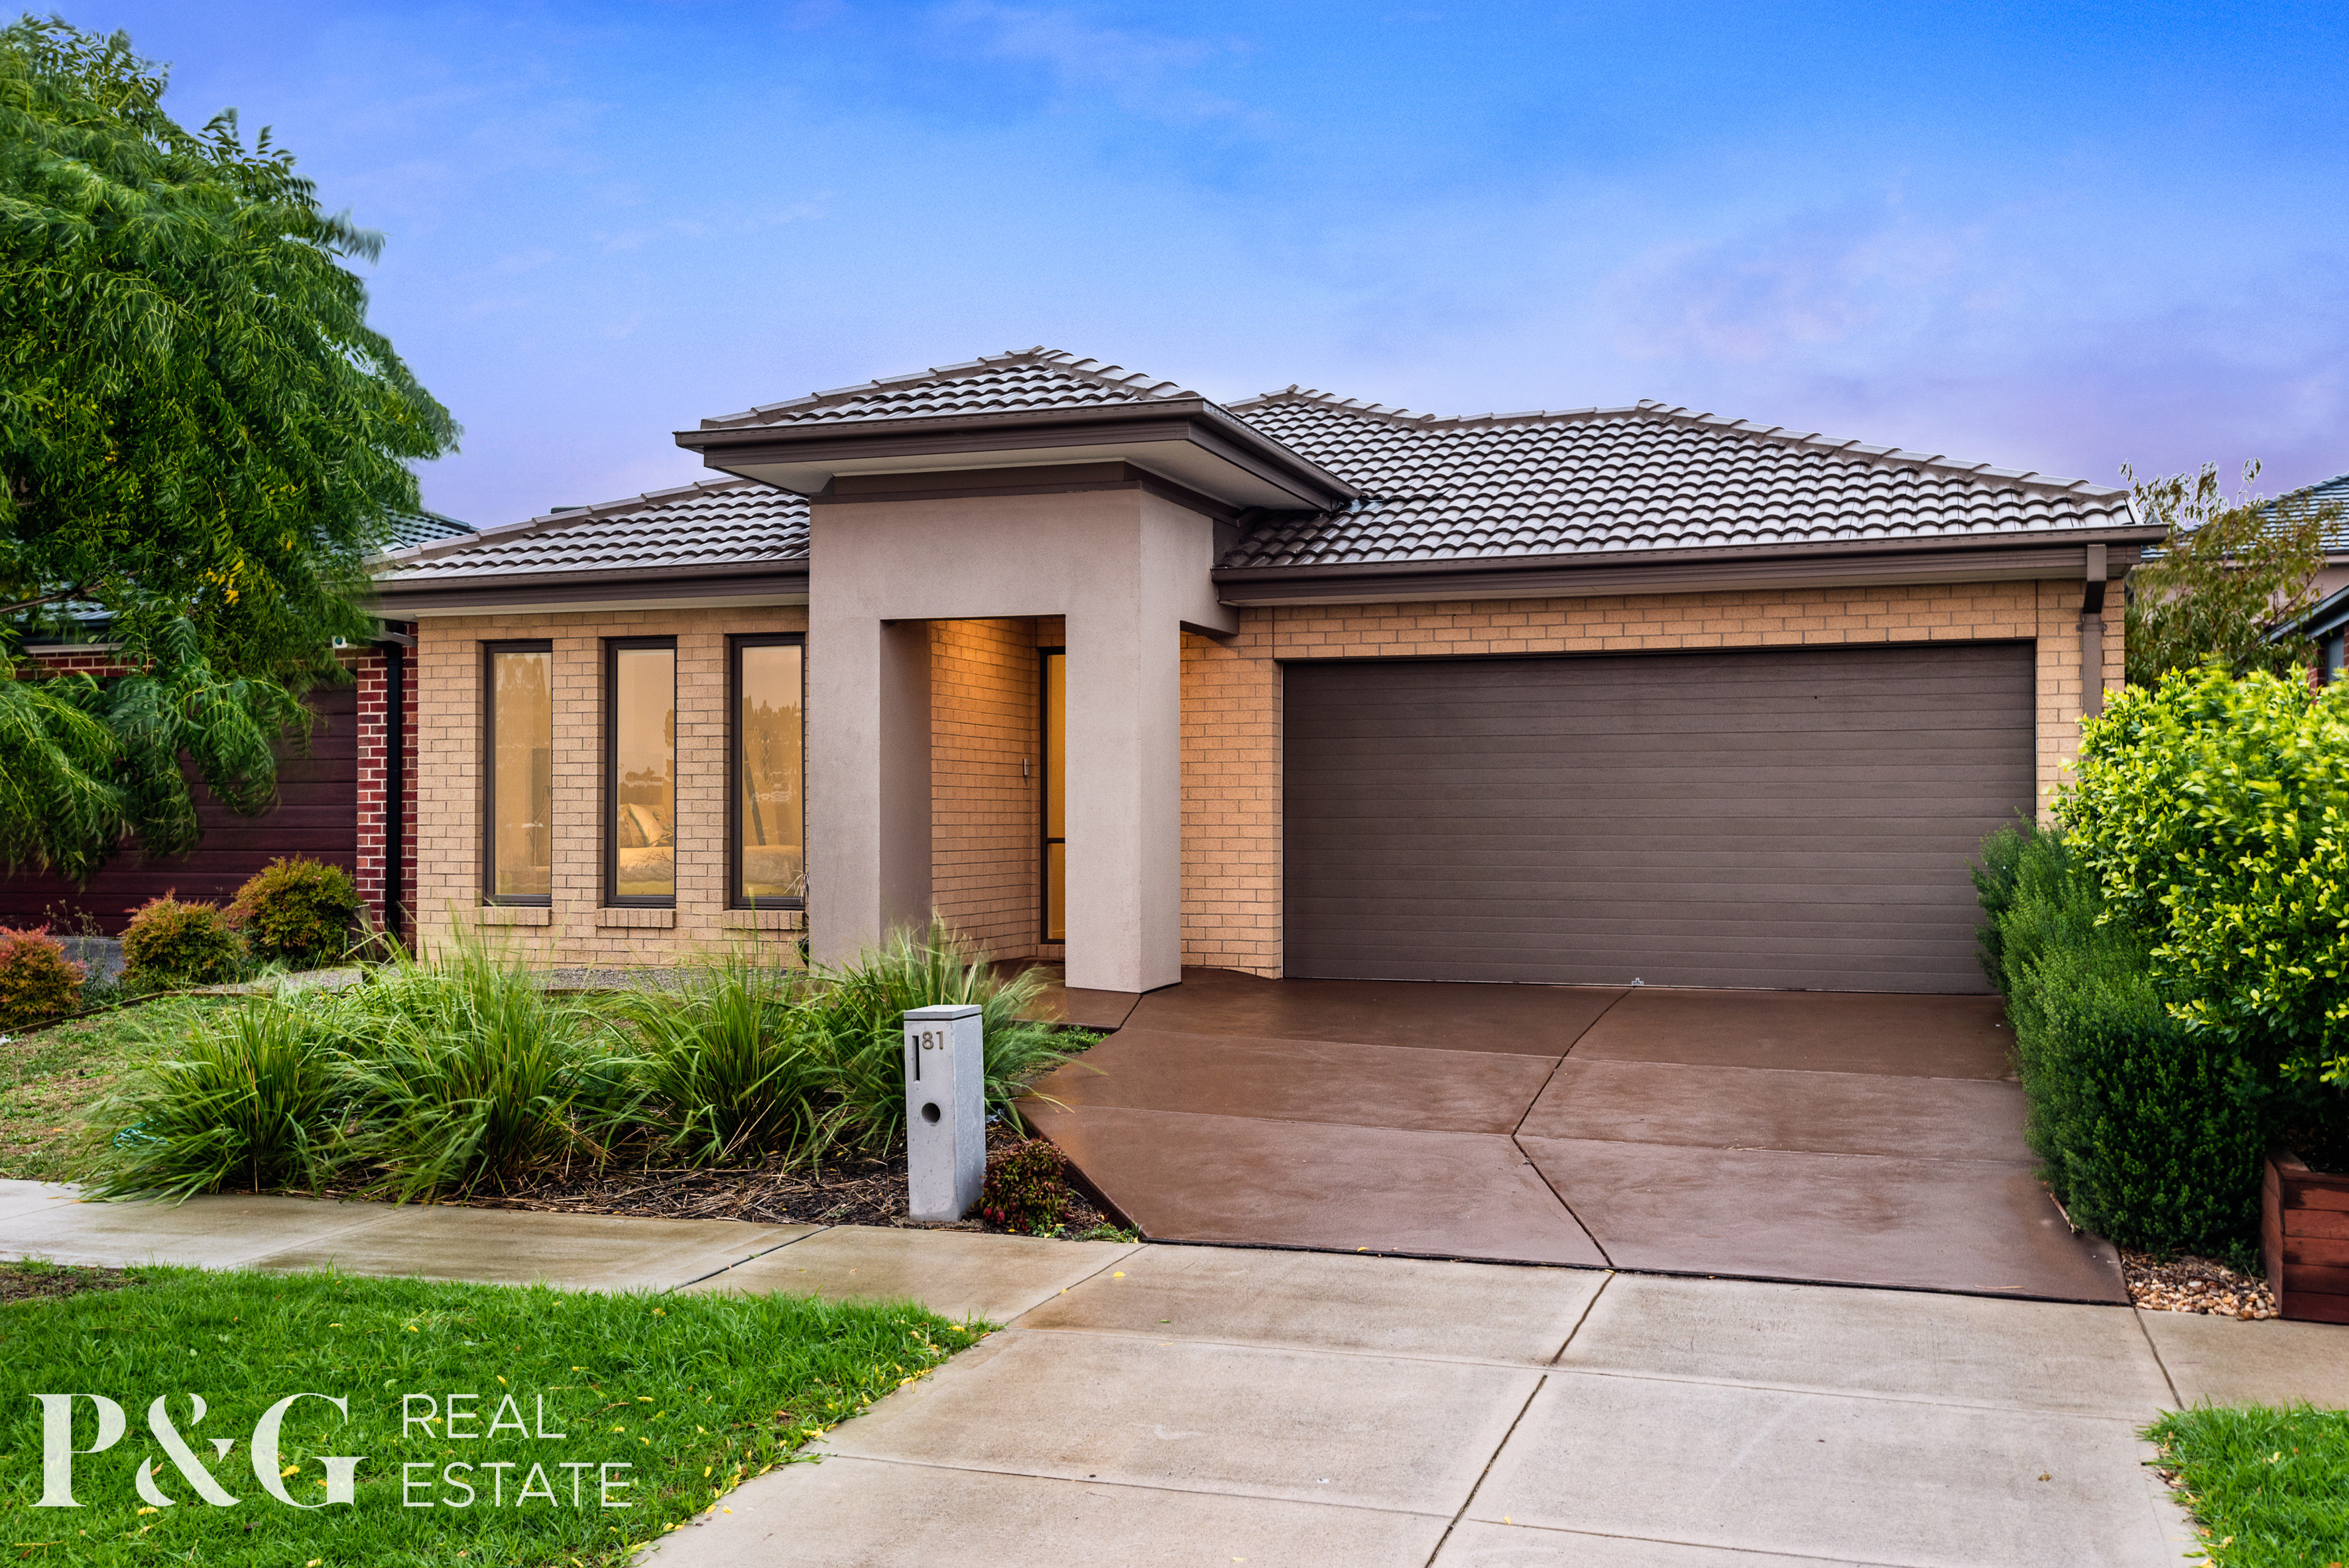 81 Macumba Drive, CLYDE NORTH, VIC, 3978 - Image